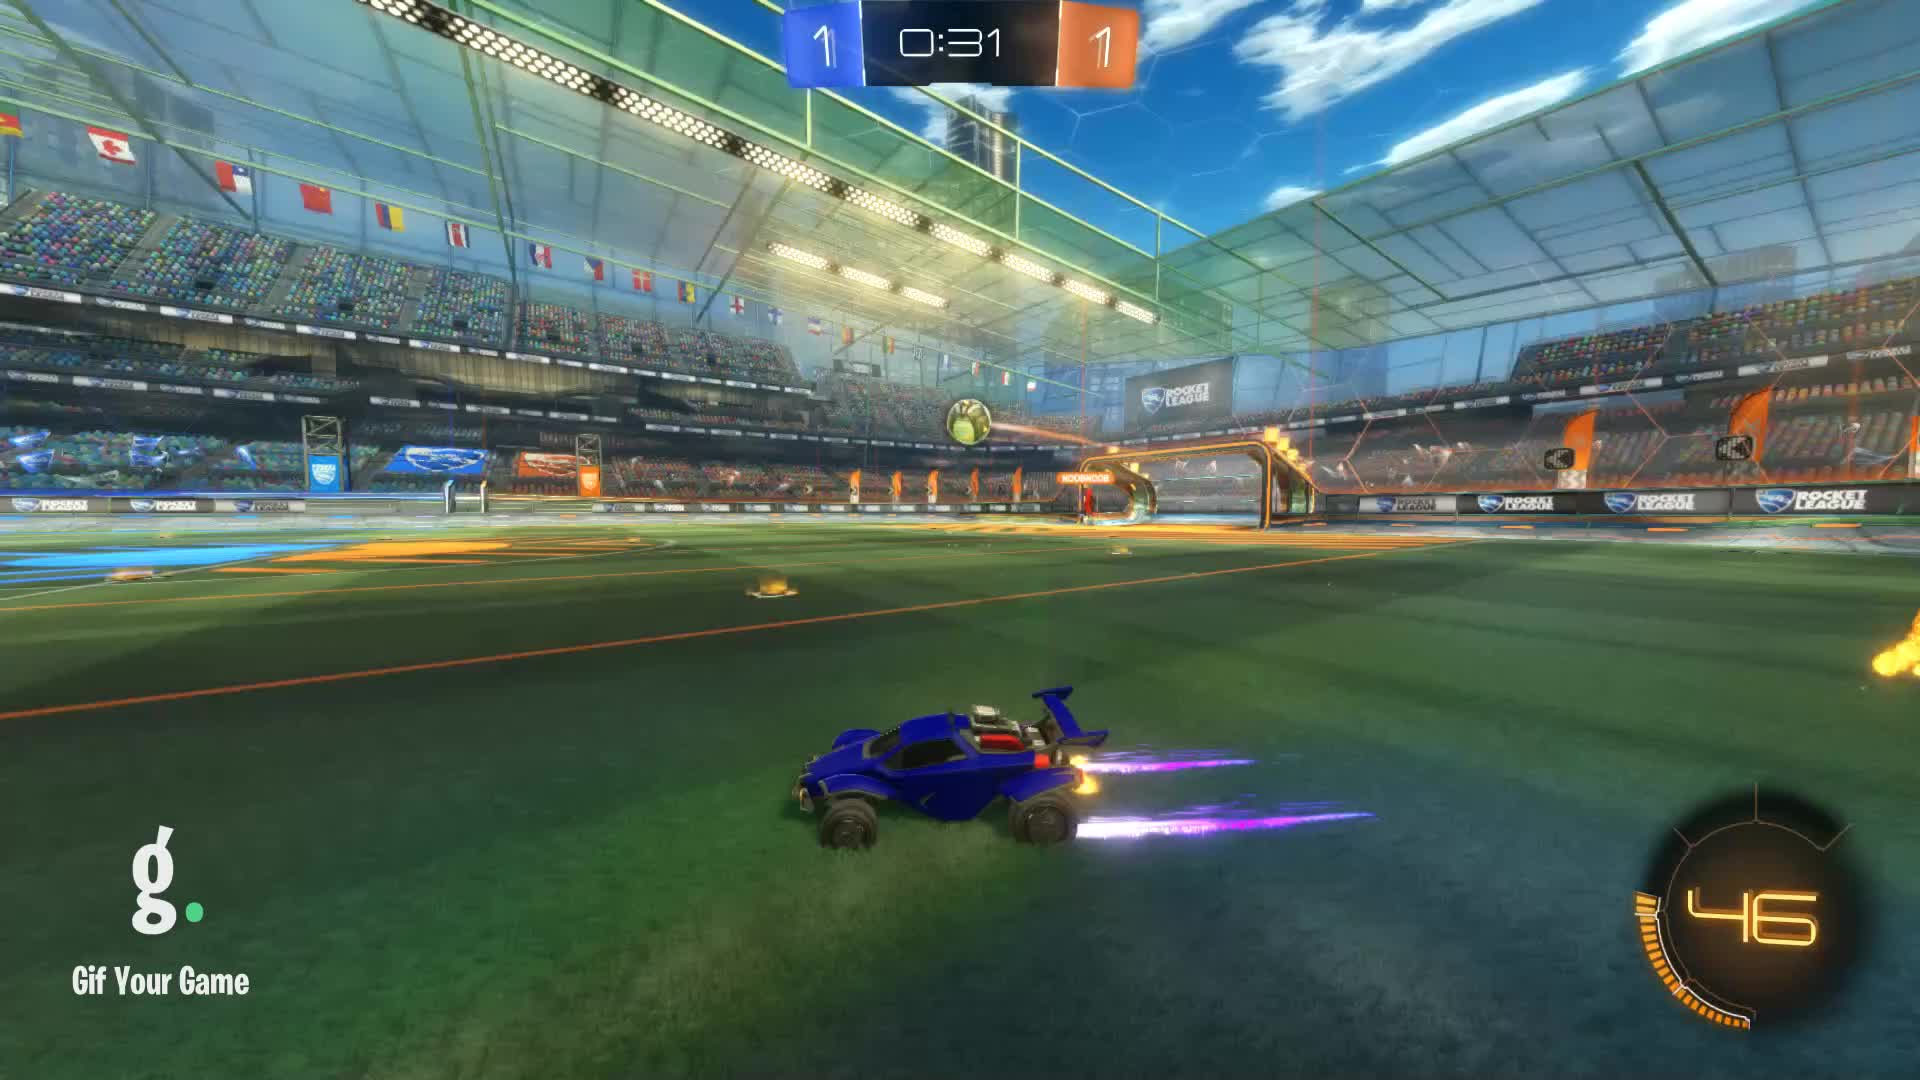 Gif Your Game, GifYourGame, Goal, Rocket League, RocketLeague, zfractor ツ, Goal 3: zfractor ツ GIFs